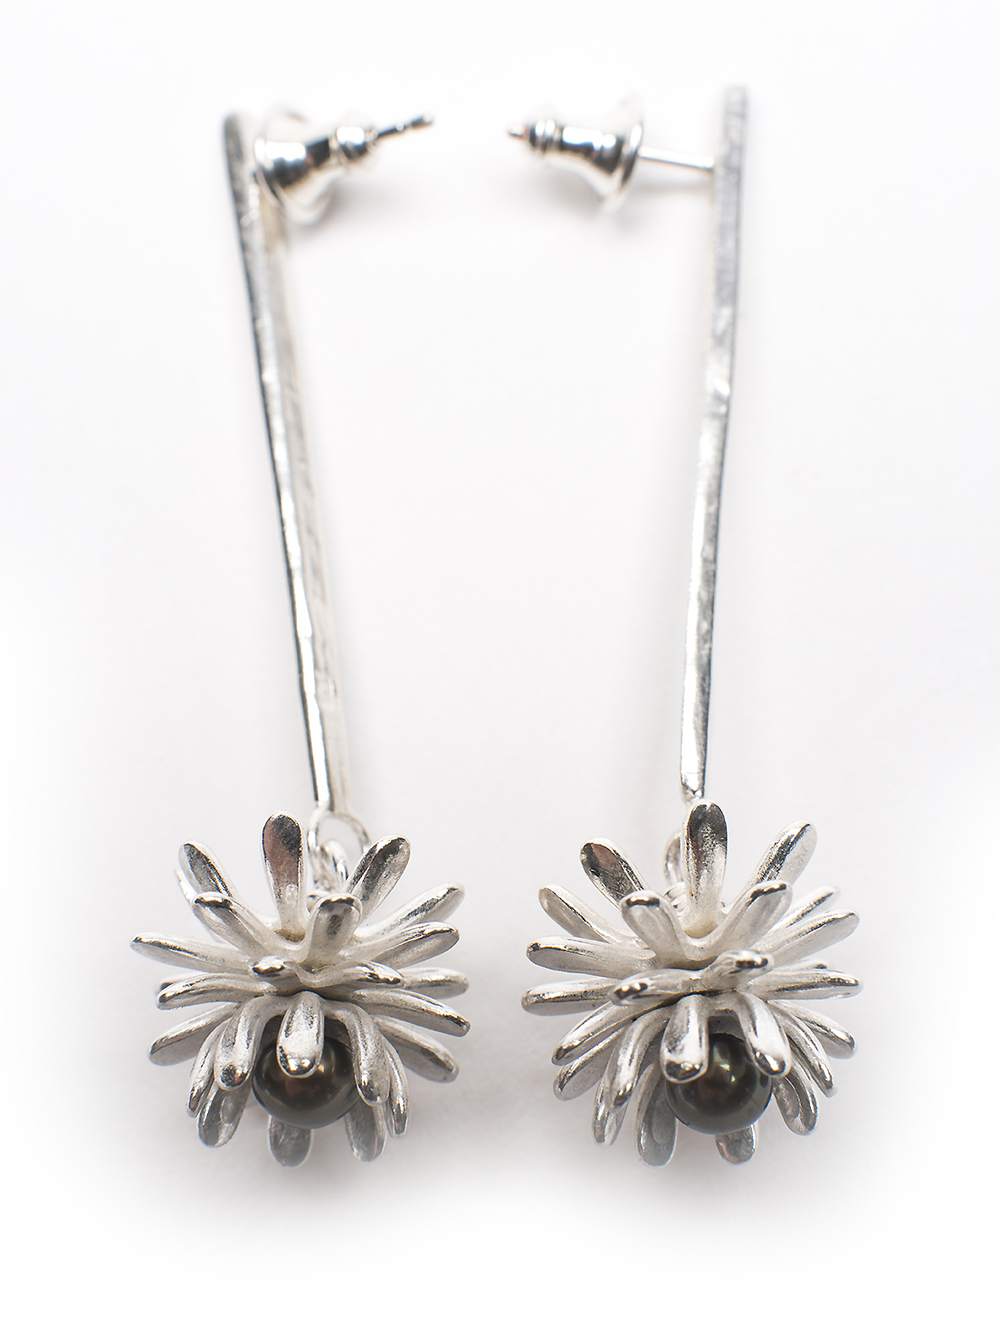 Lorraine-Gibby-jewellery-silver-pearls-aeoleum-cactus-earrings-ring-mettle-studios (4).jpg